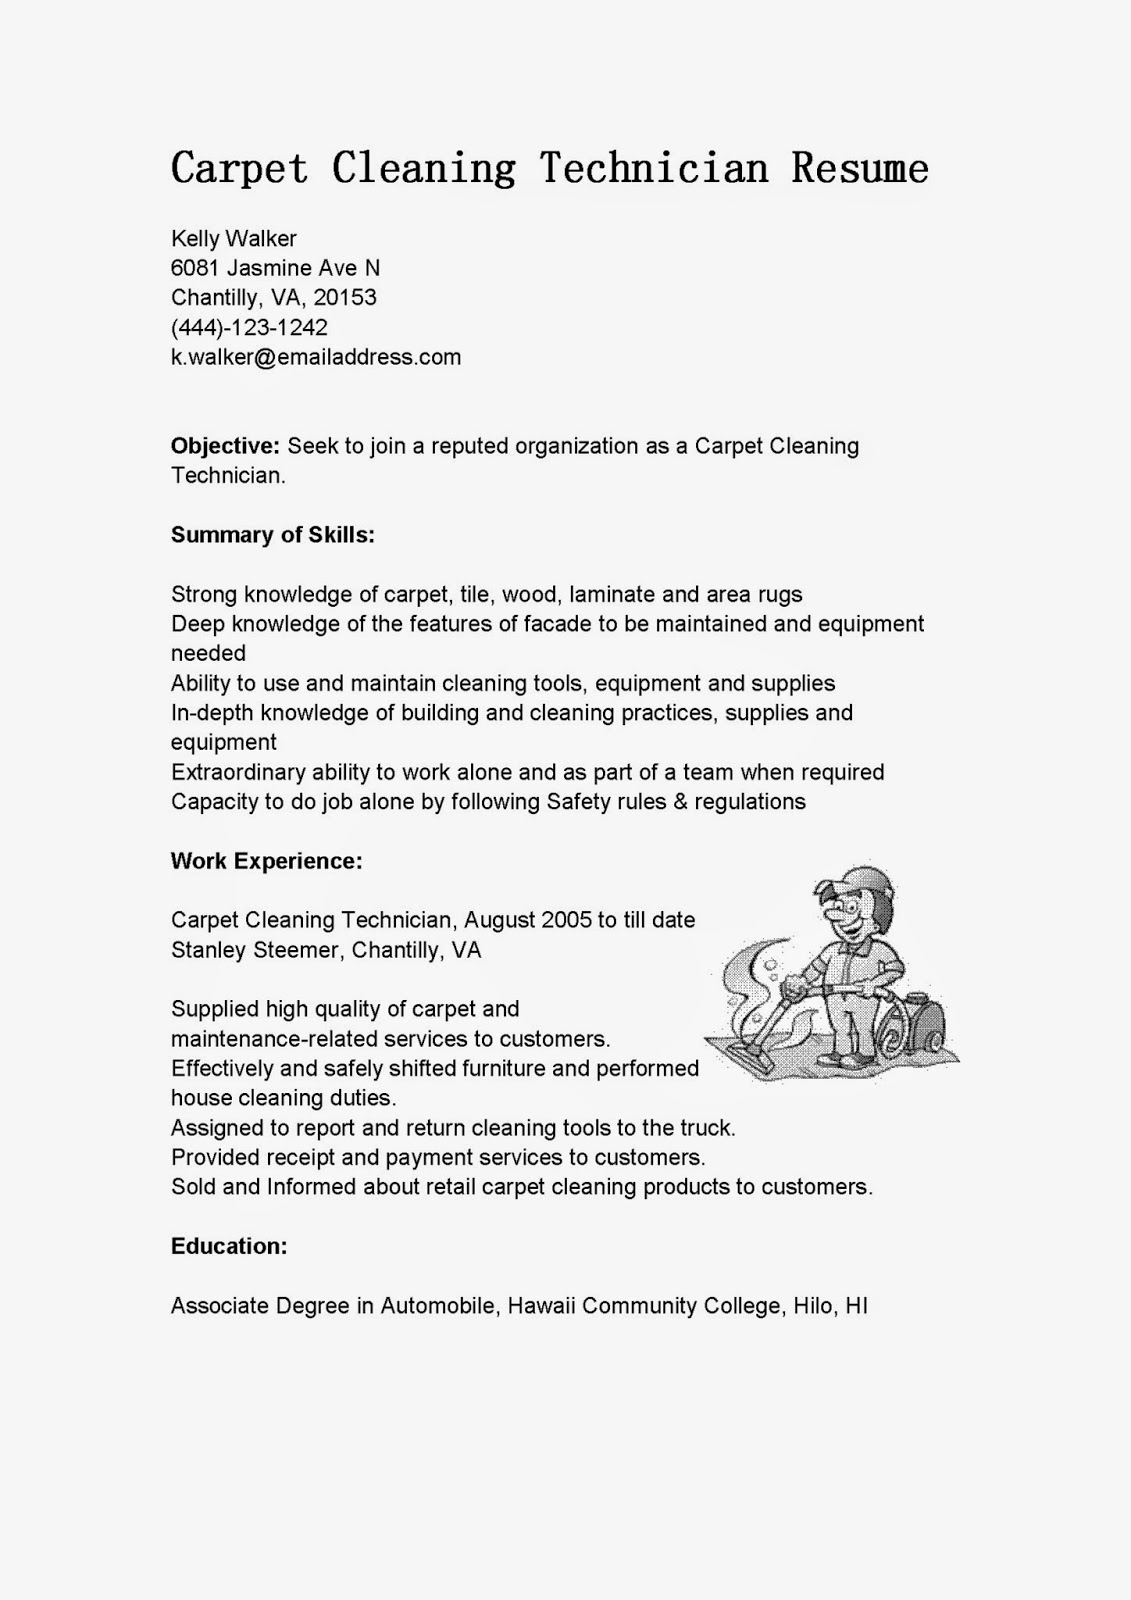 Resume Samples Cv Resume Format Sample Housekeeping Cover Letter Resume  Samples Cv Resume